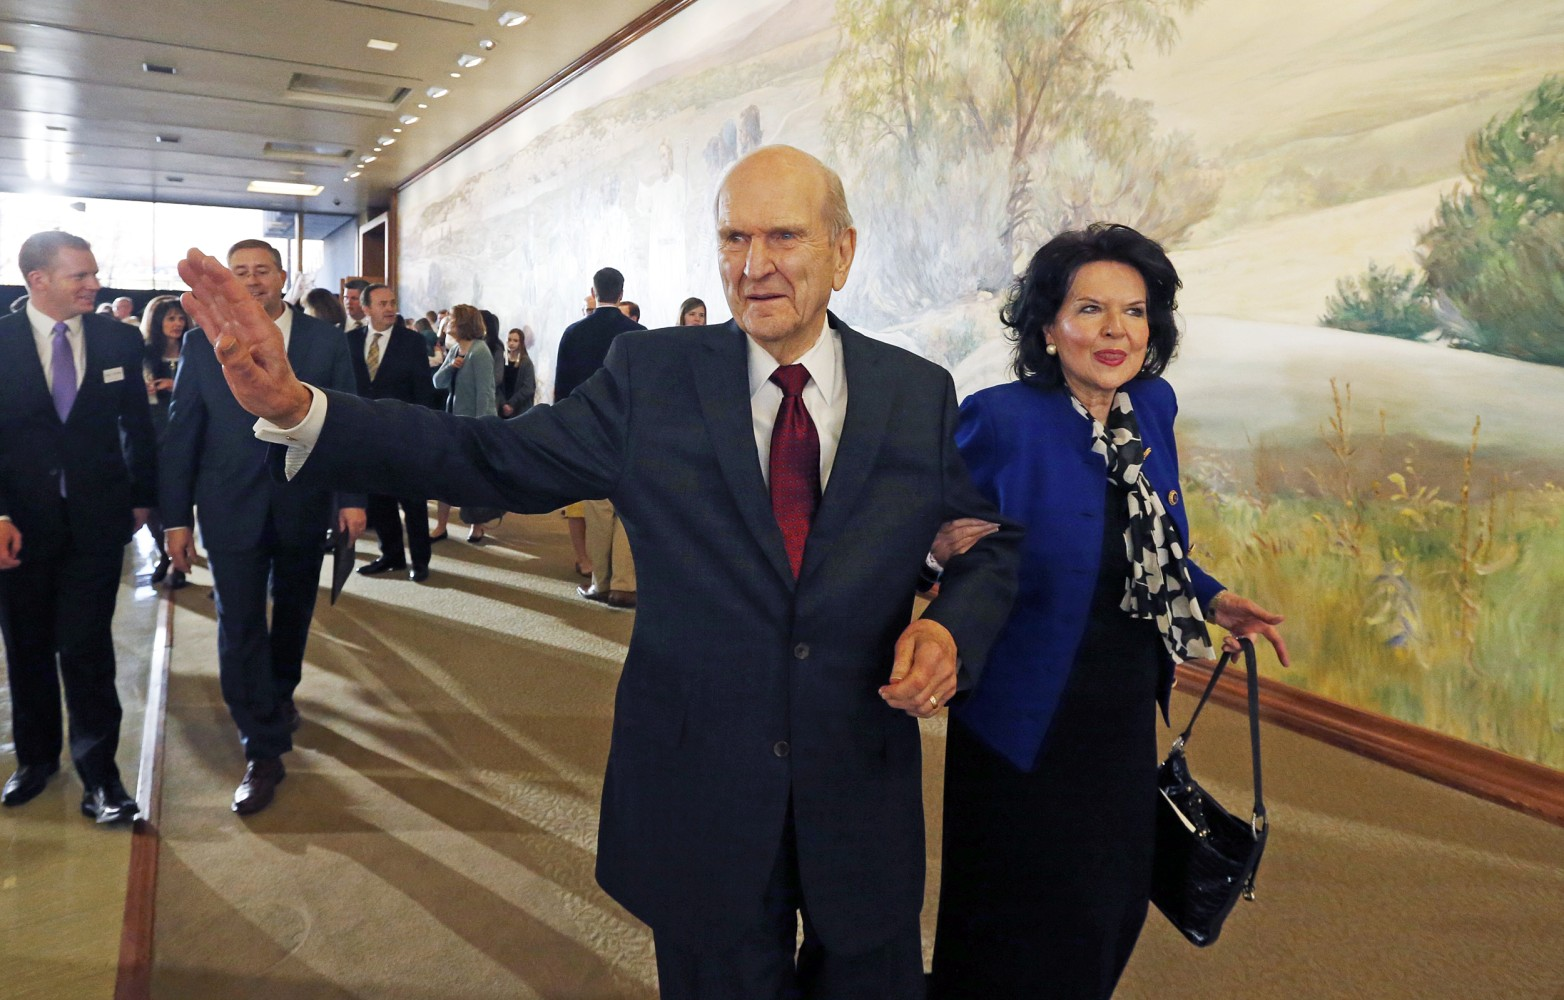 Pres. Russell M. Nelson announced as 17th President of LDS church